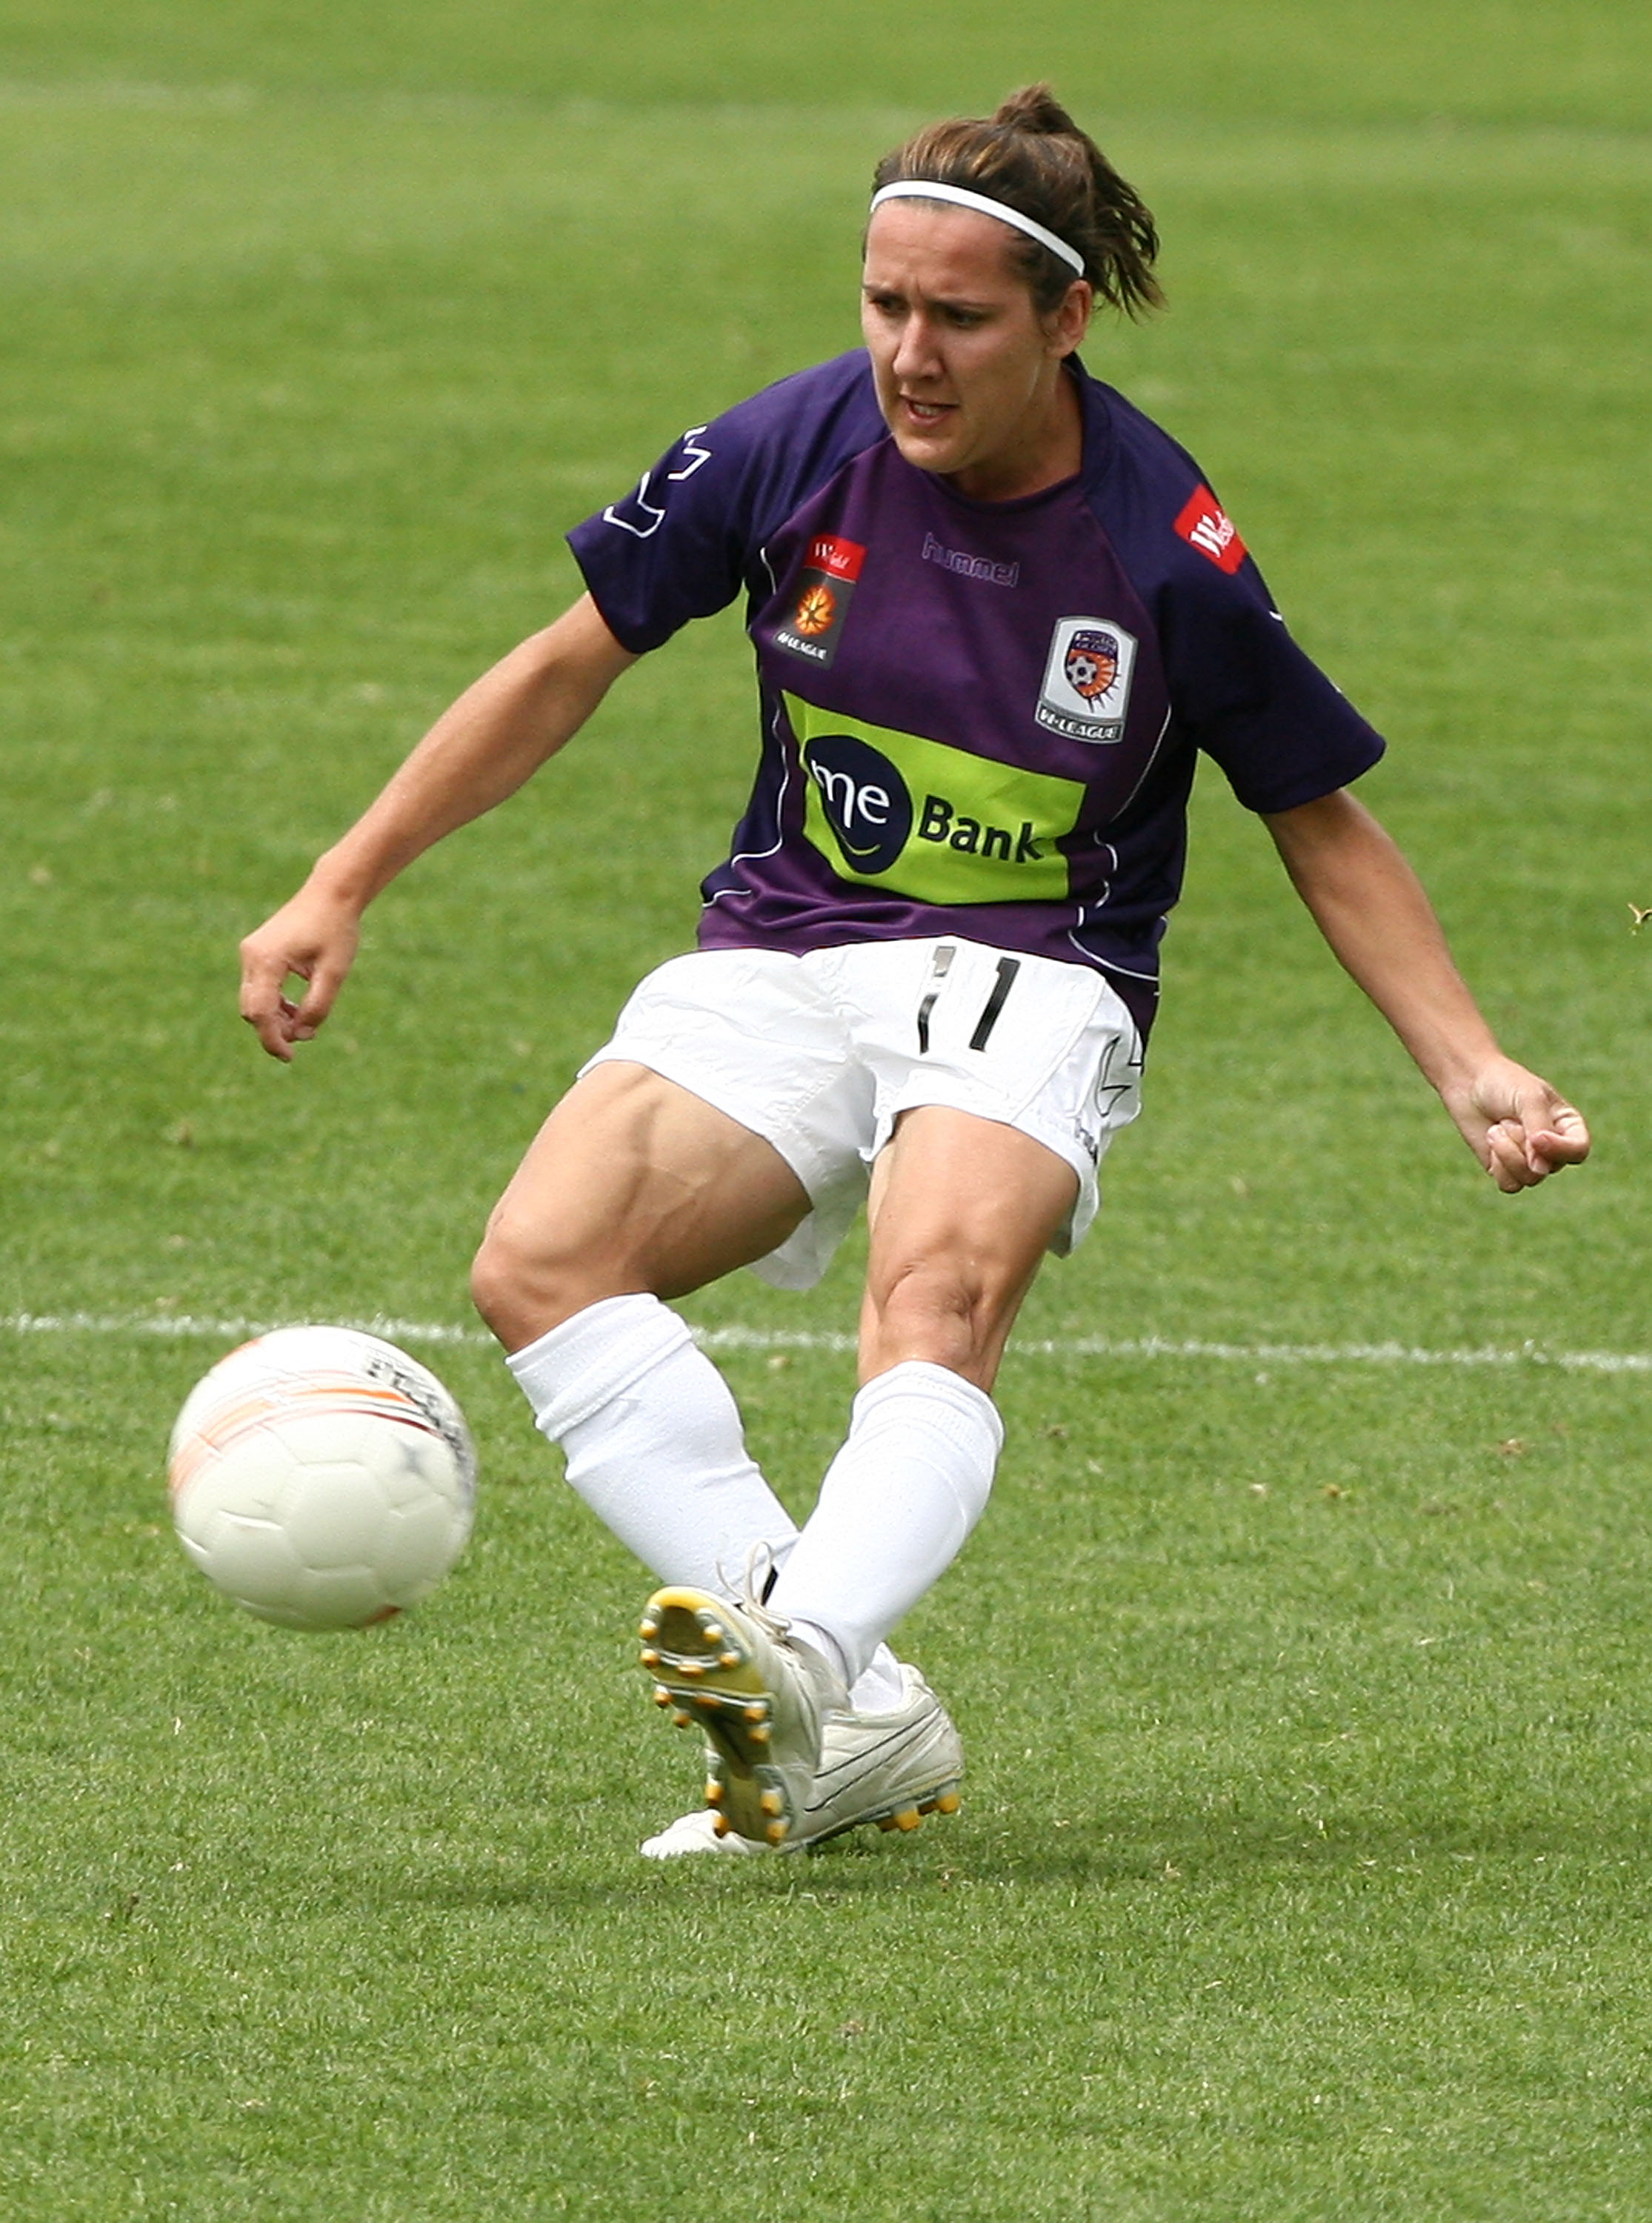 PERTH, AUSTRALIA - OCTOBER 10:  Lisa De Vanna of the Glory passes the ball during the round two W-League match between the Perth Glory and Newcastle Jets at ME Bank Stadium on October 10, 2009 in Perth, Australia.  (Photo by Paul Kane/Getty Images)